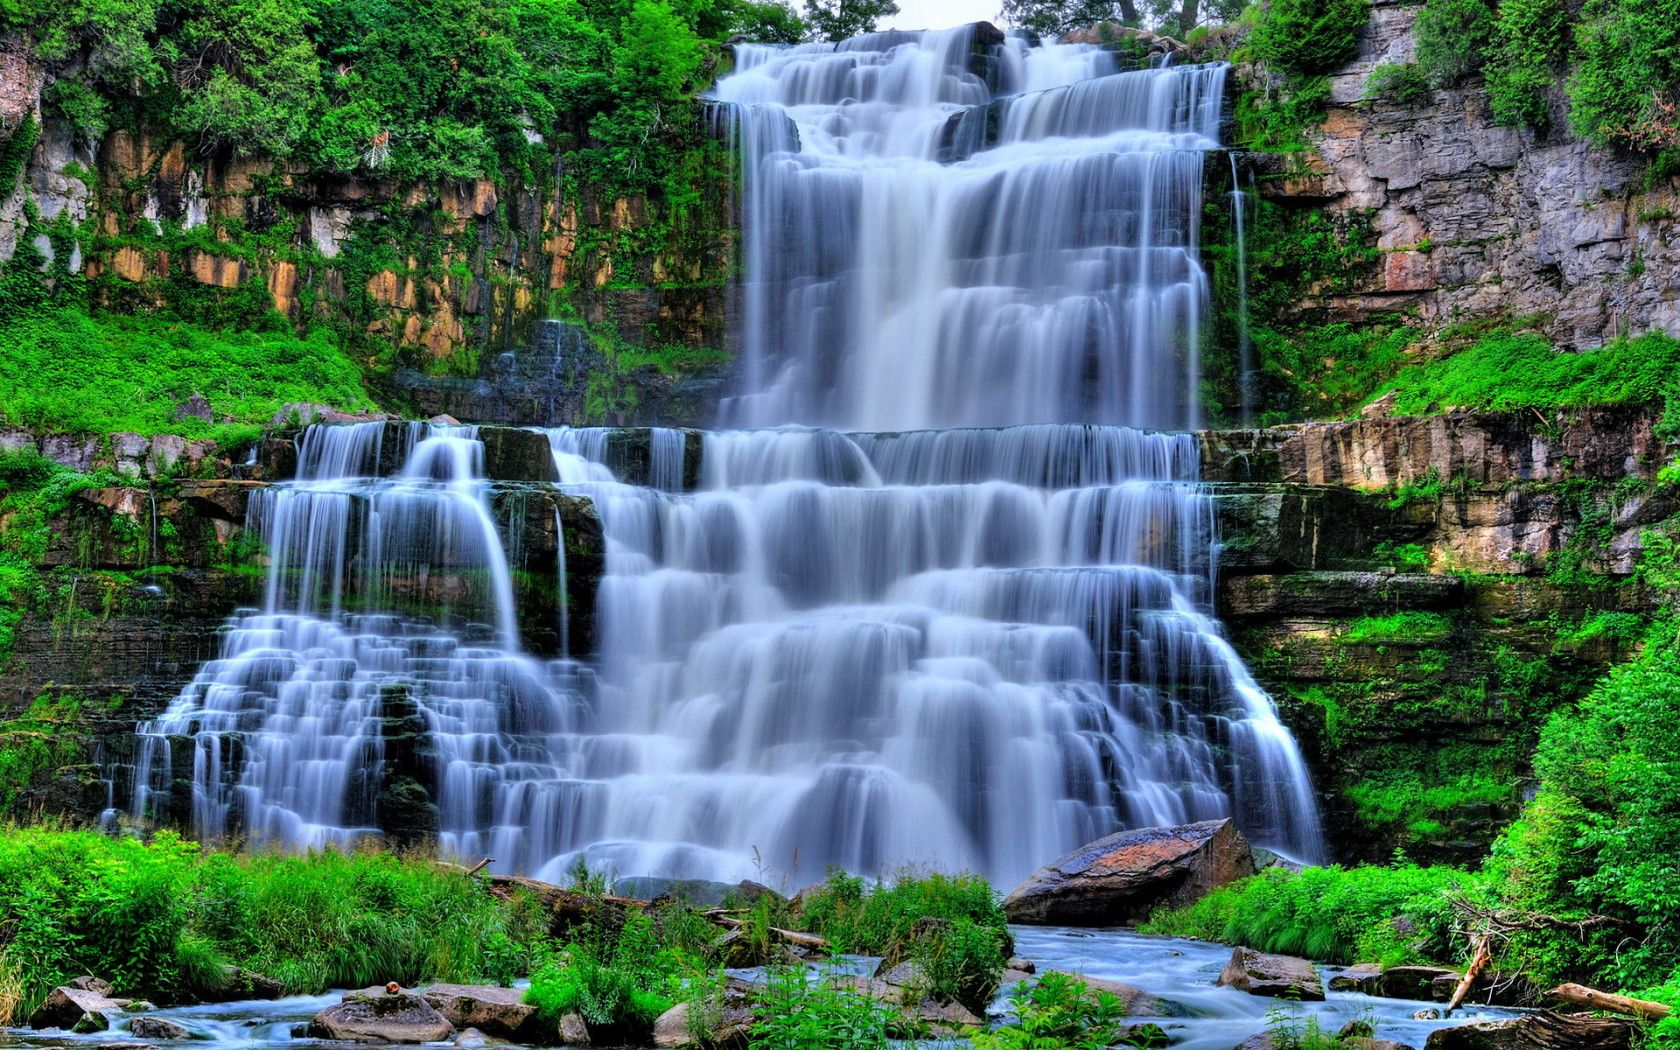 Top Ten Most Beautiful Waterfalls In The World Hd Wallpaper Background Images Waterfall Scenery Waterfall Wallpaper Waterfall Pictures